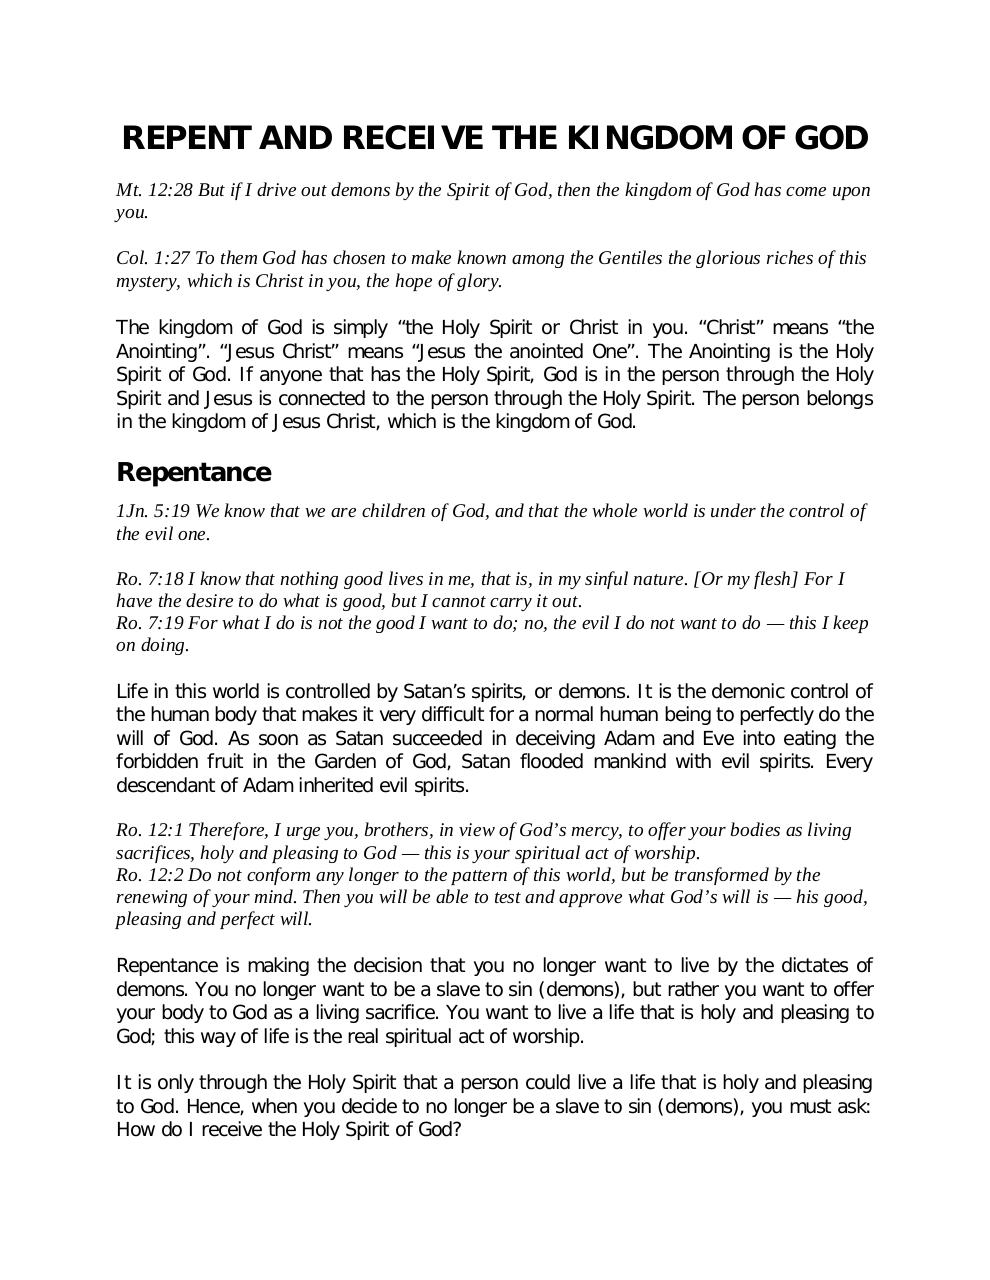 REPENT AND RECEIVE THE KNIGDOM OF GOD.pdf - page 1/4